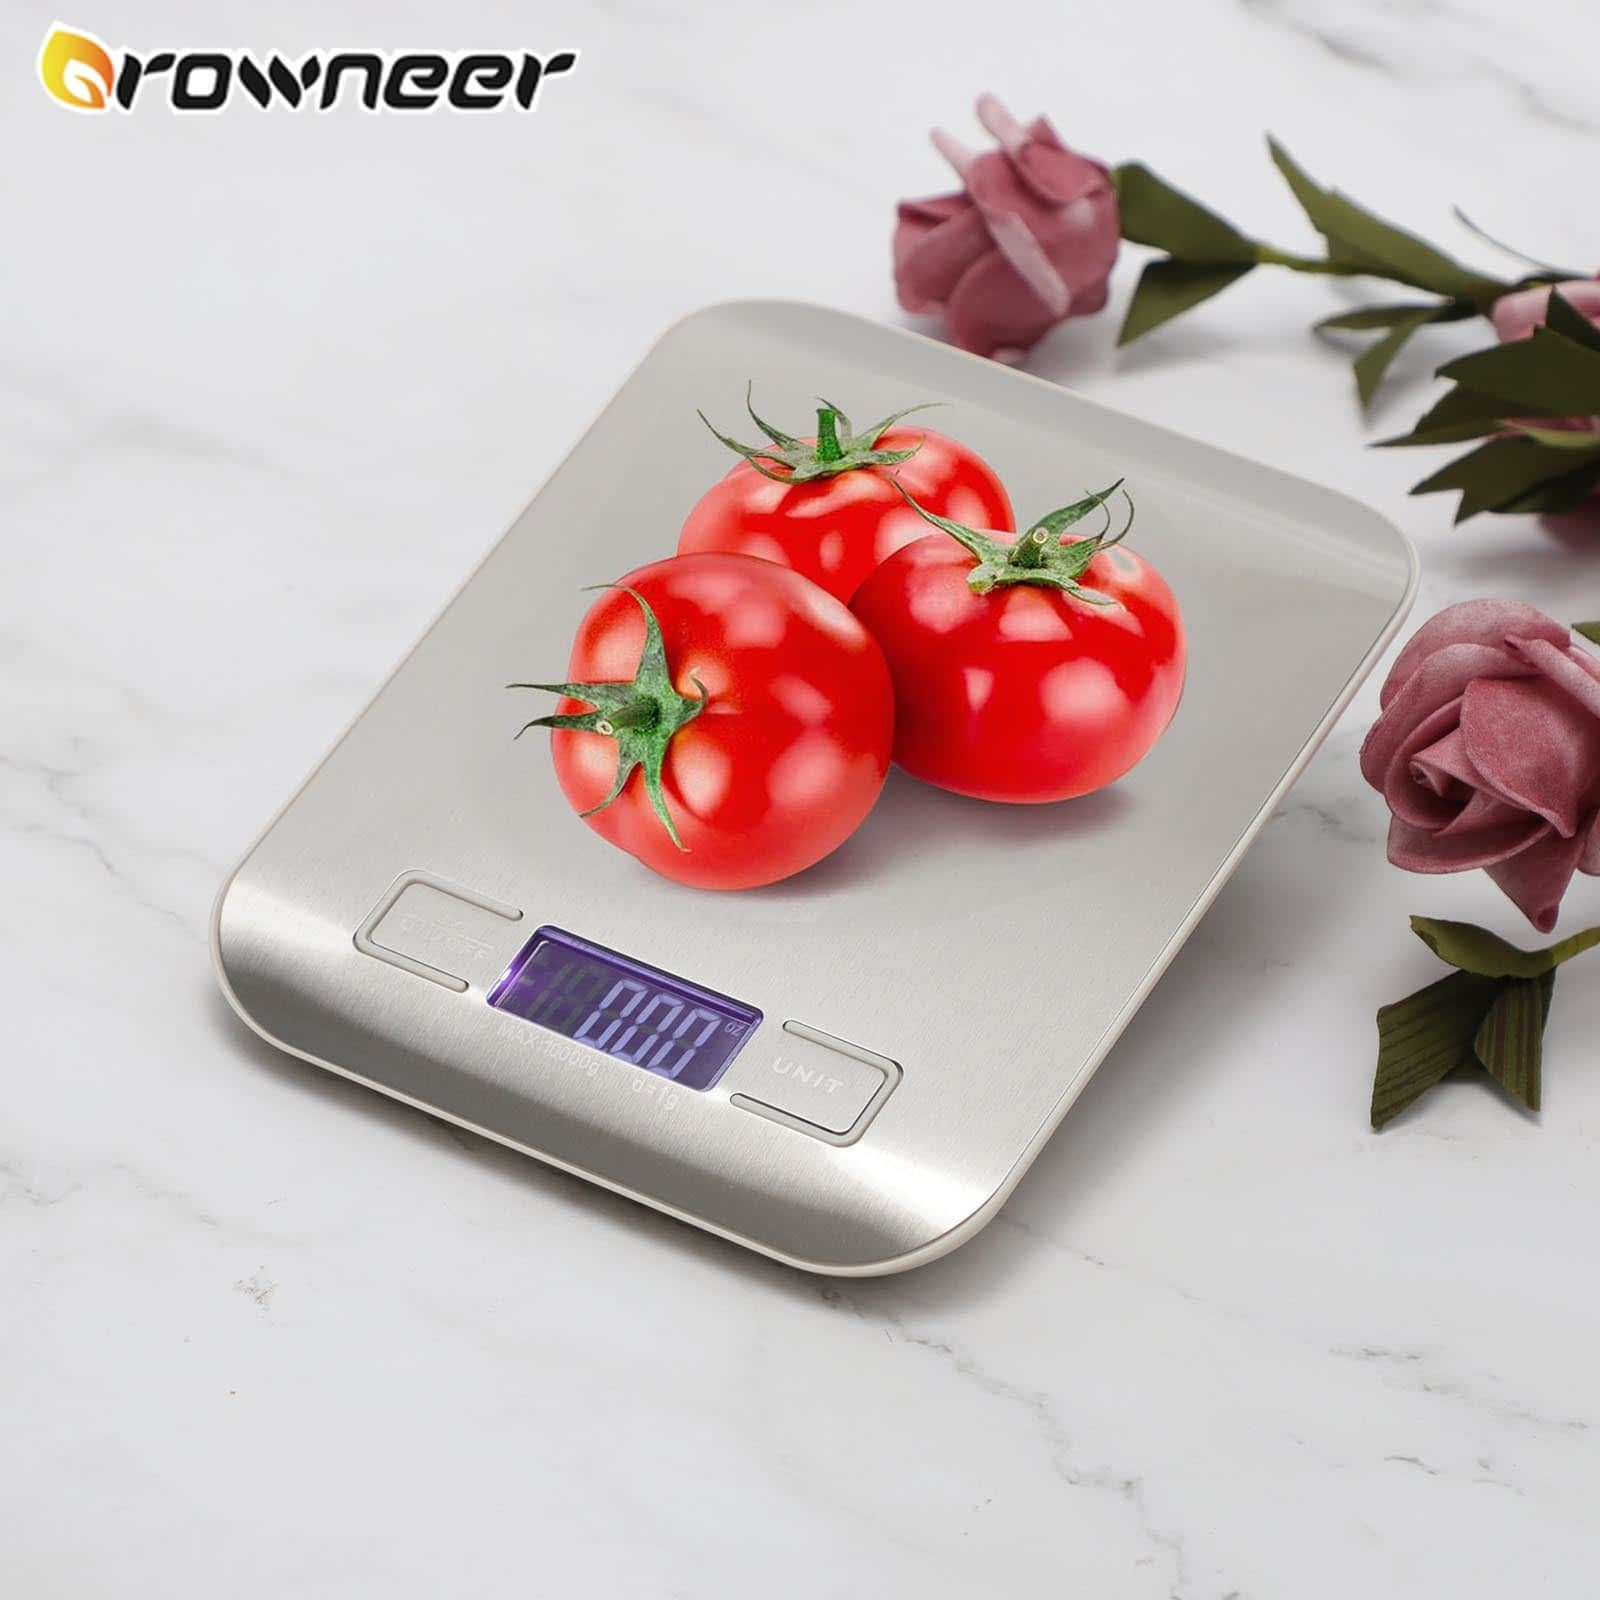 Digital-Food-Scale-Stainless-Steel-LCD-Display-Diet-Balance-Measuring-Tool-Multi-Units-Auto-Zero-Point-7.jpg